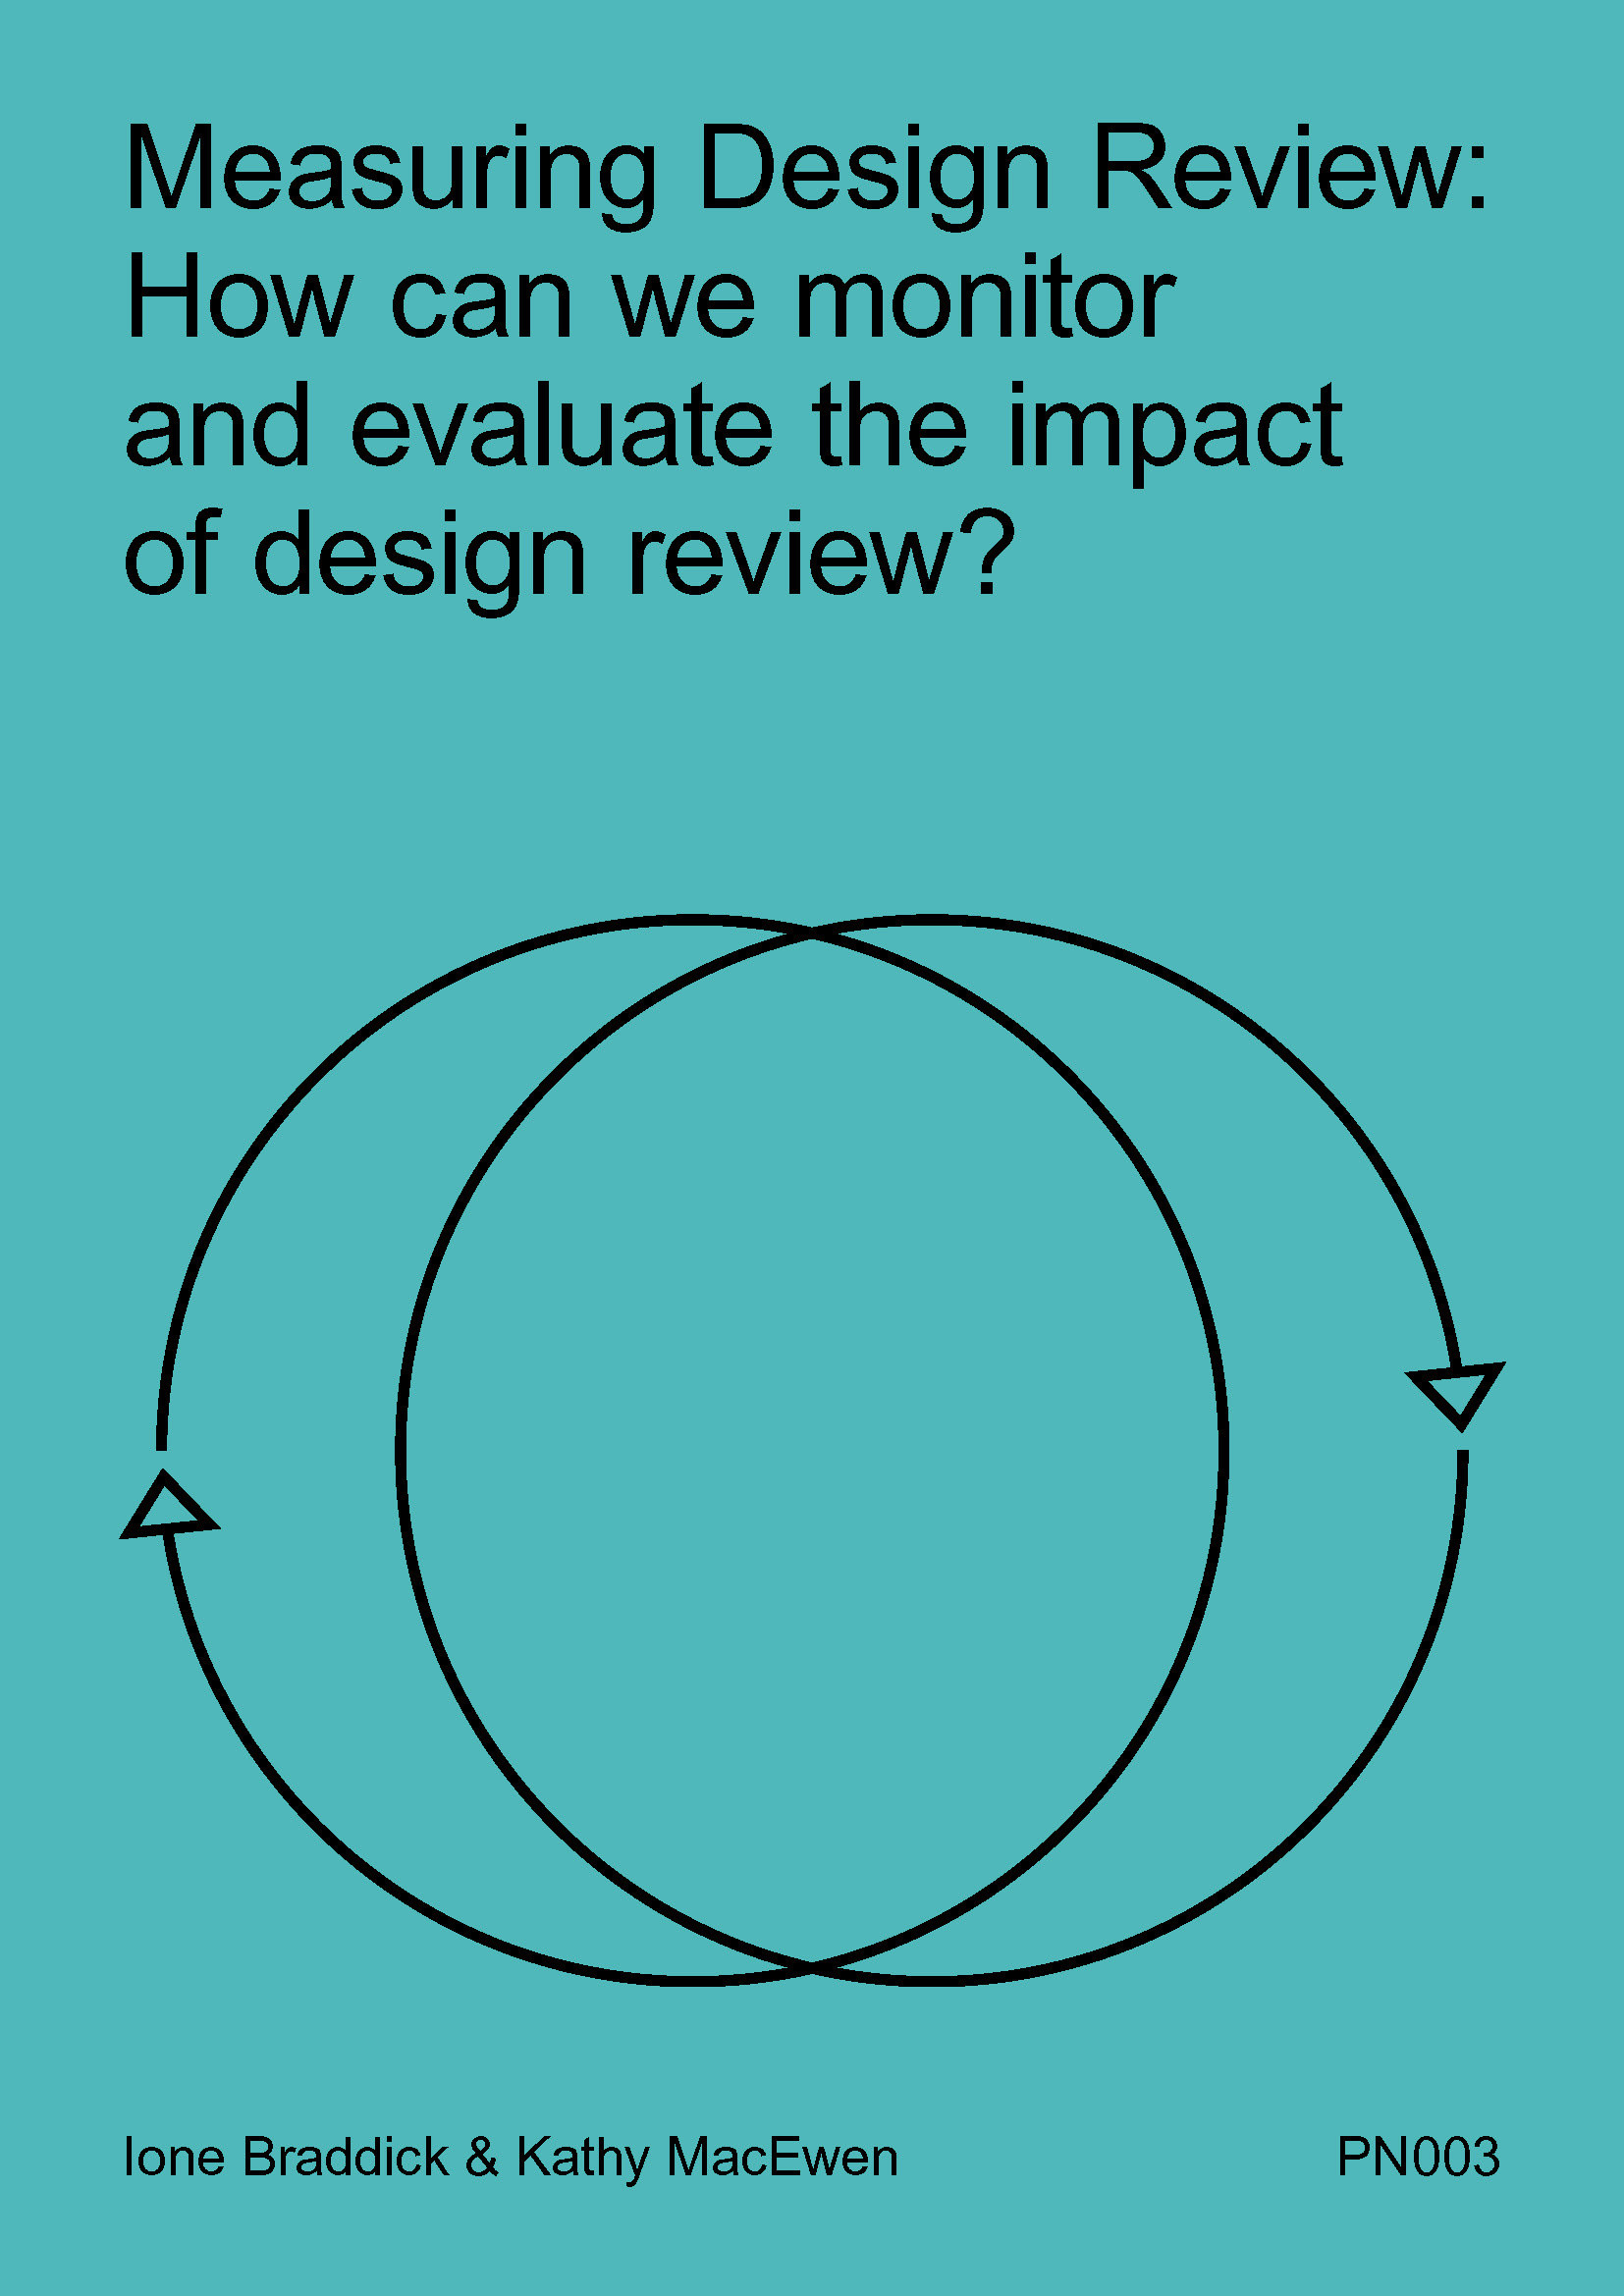 Measuring Design Review